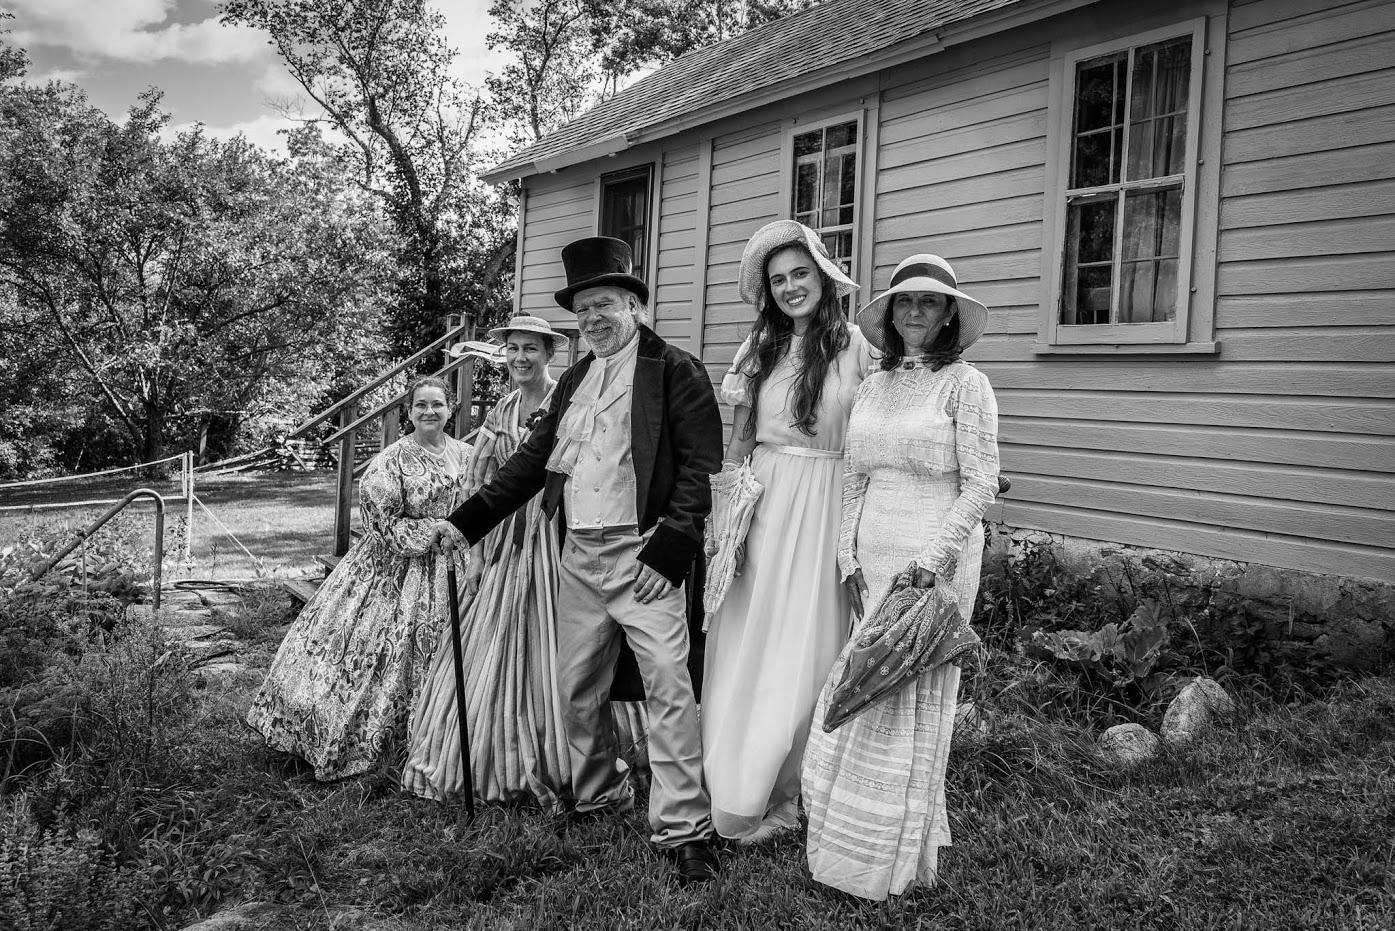 Old Fashioned Victorian Family Picnic @ Smith-Appleby House Museum